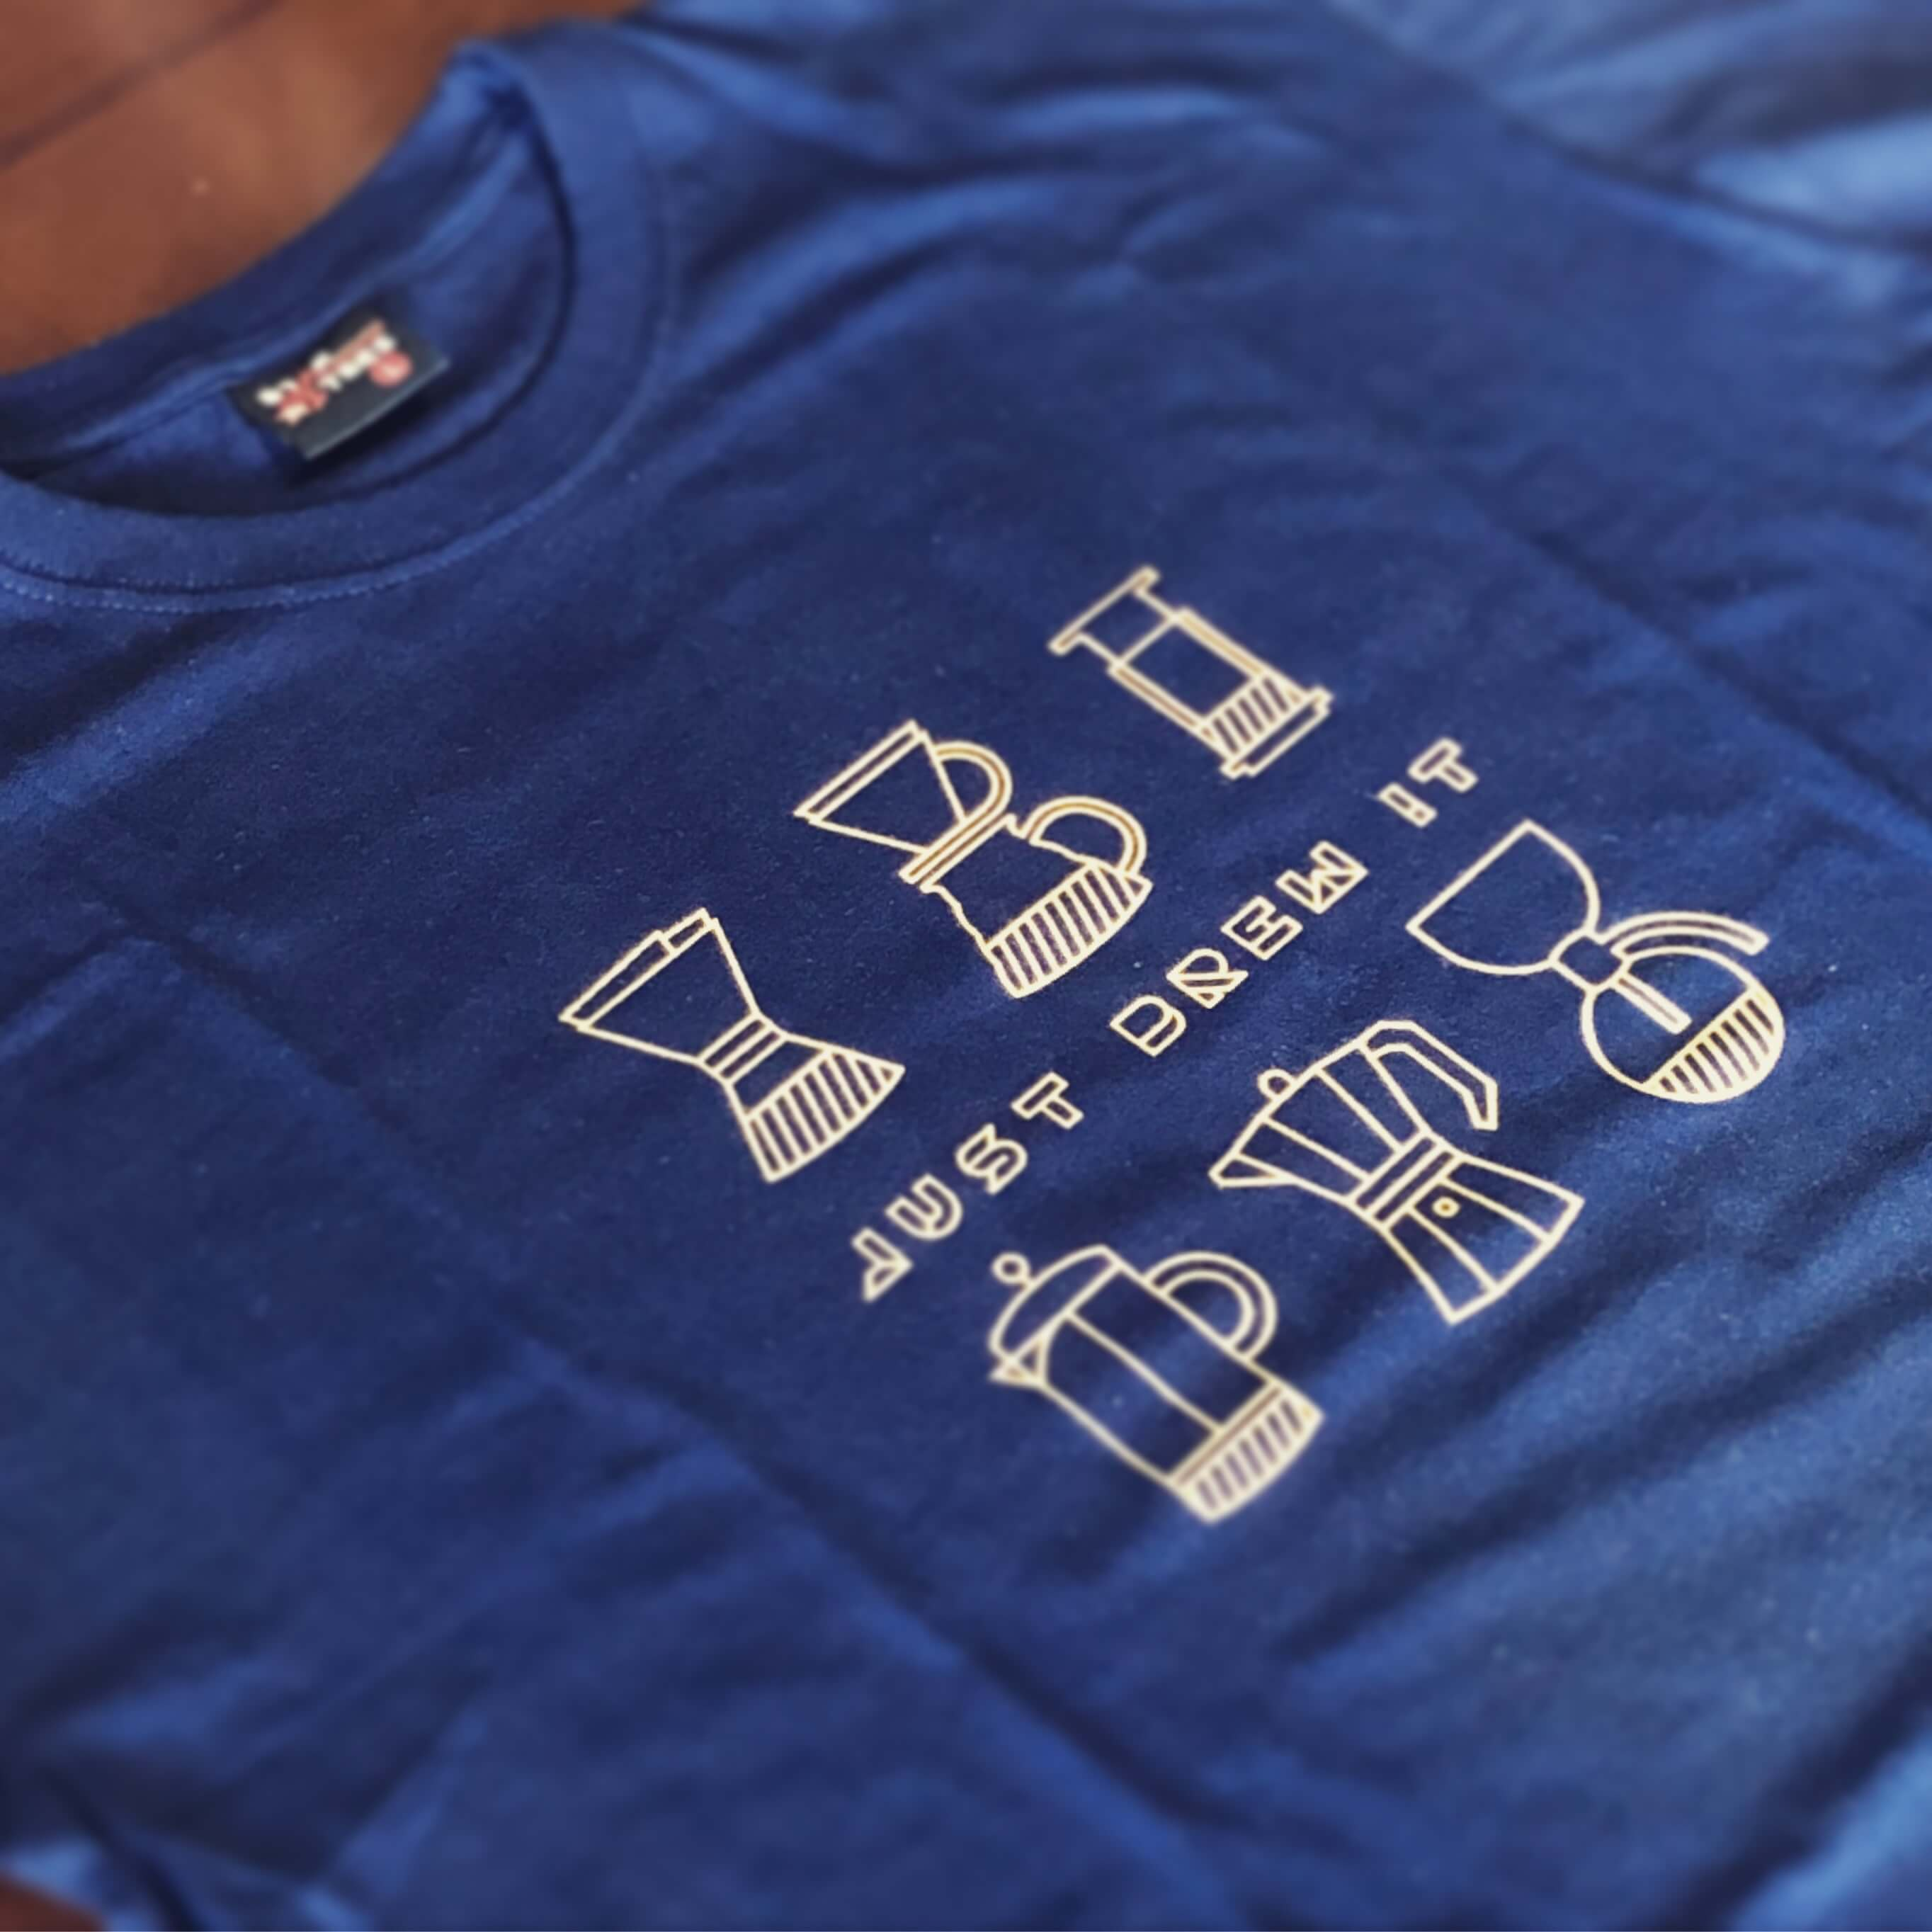 9cf64b50 On a fine fabric, printing is just as fine in detail.